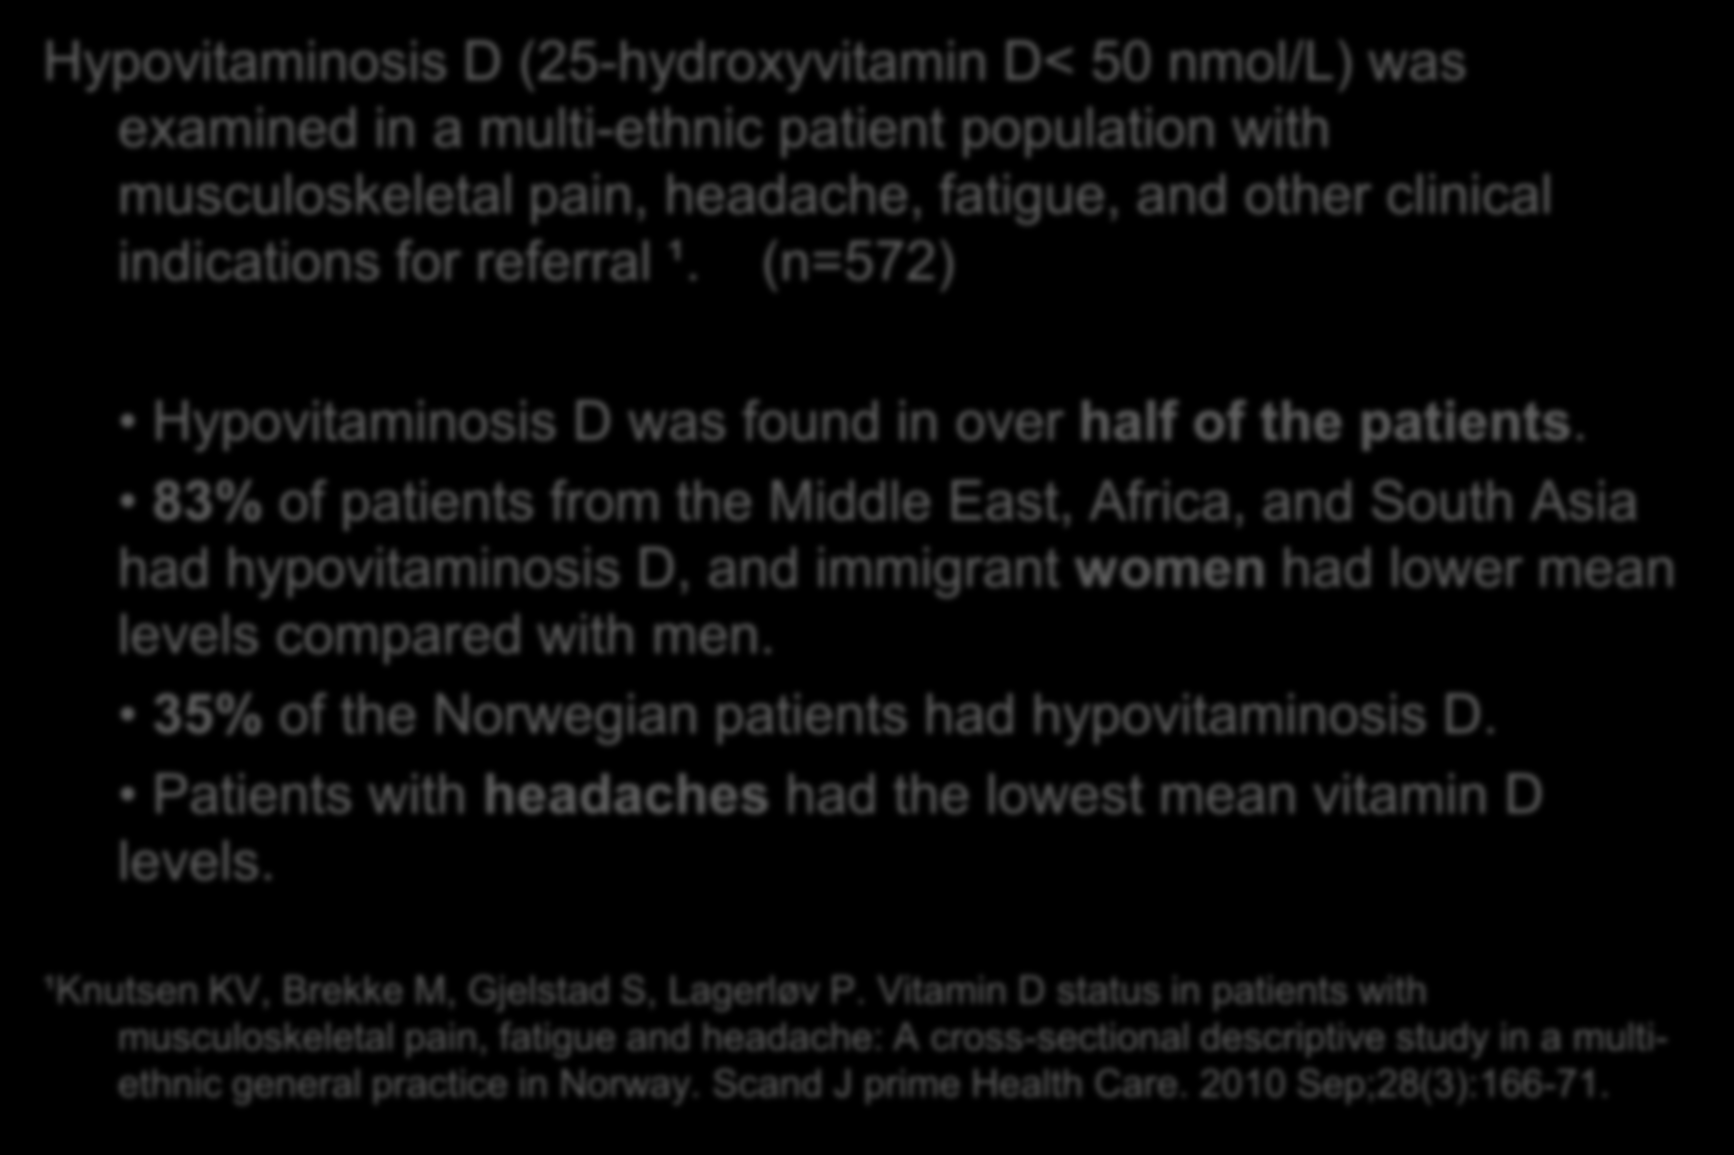 Romsås Legesenter 2005-2007 Hypovitaminosis D (25-hydroxyvitamin D< 50 nmol/l) was examined in a multi-ethnic patient population with musculoskeletal pain, headache, fatigue, and other clinical